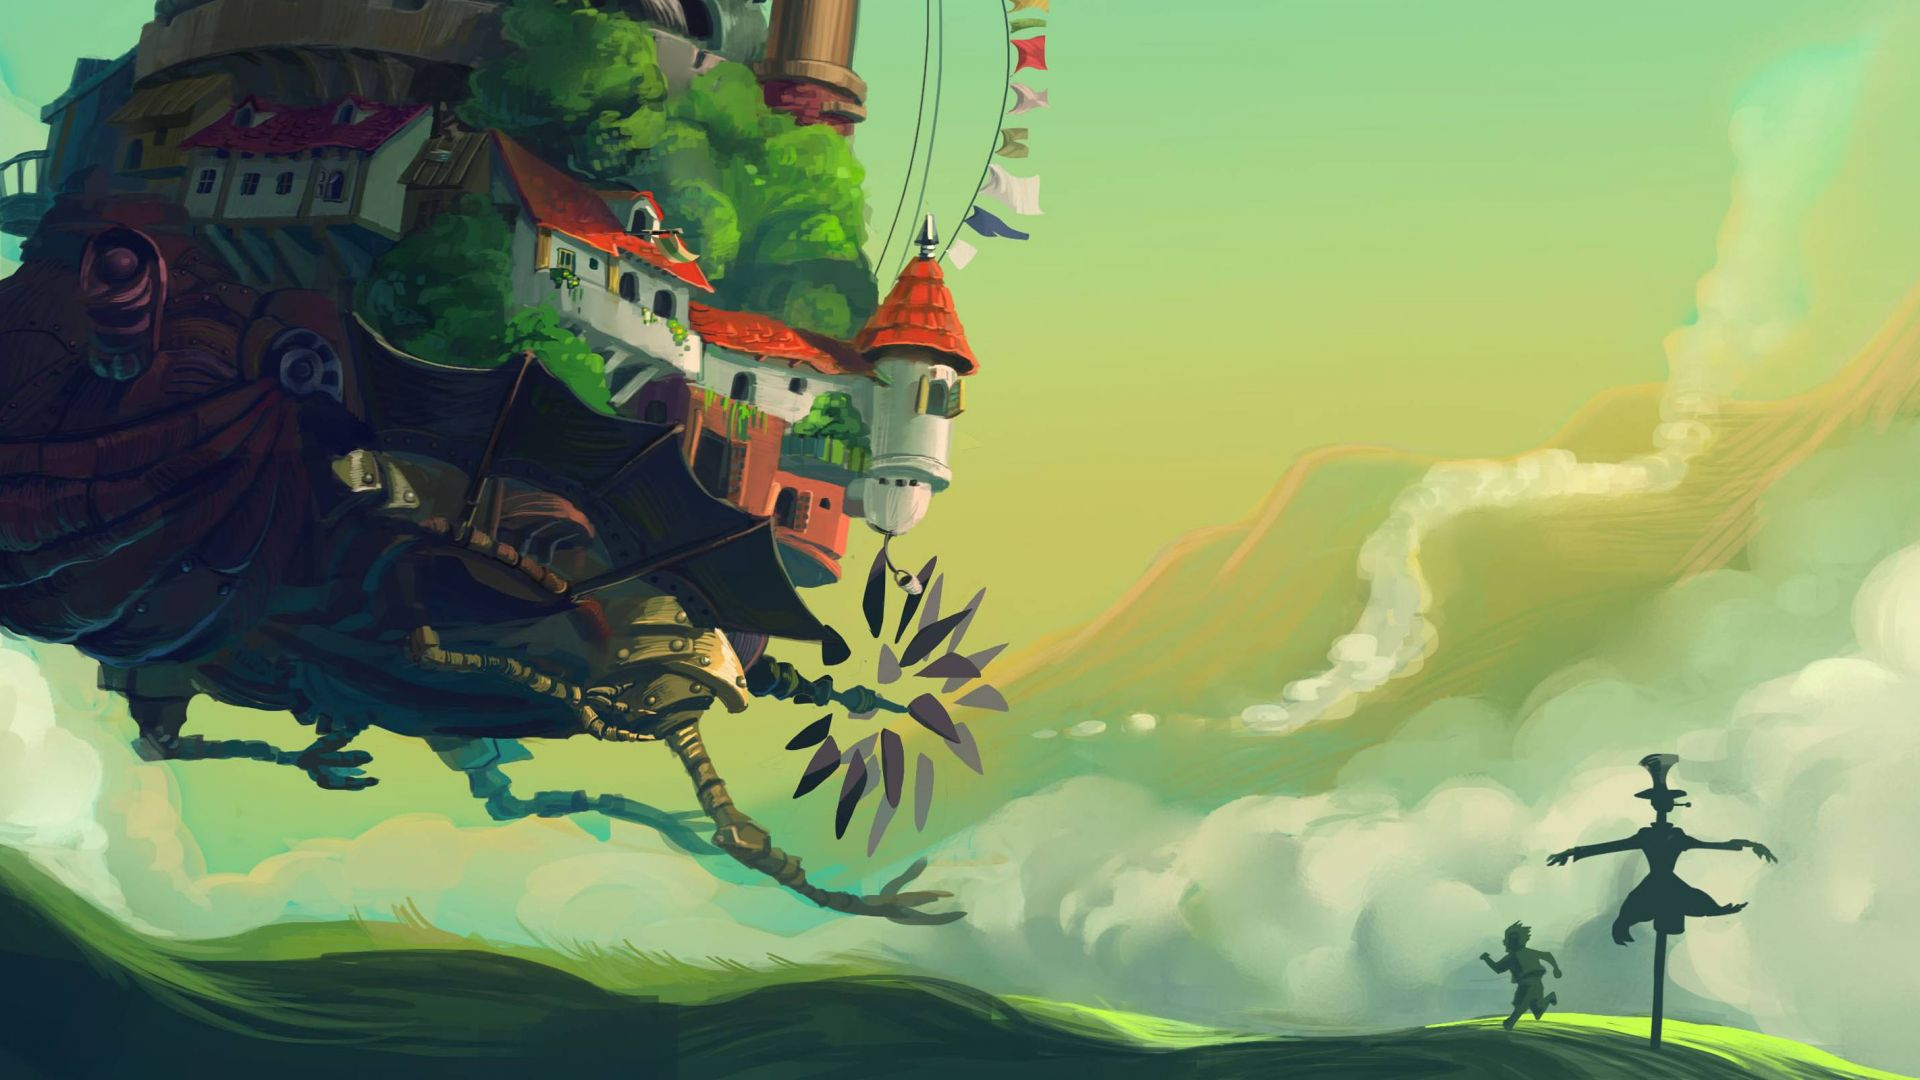 Howls Moving Castle Hd Wallpaper Wallpaper Howl S Moving Castle Turnip Head Meadow Anime